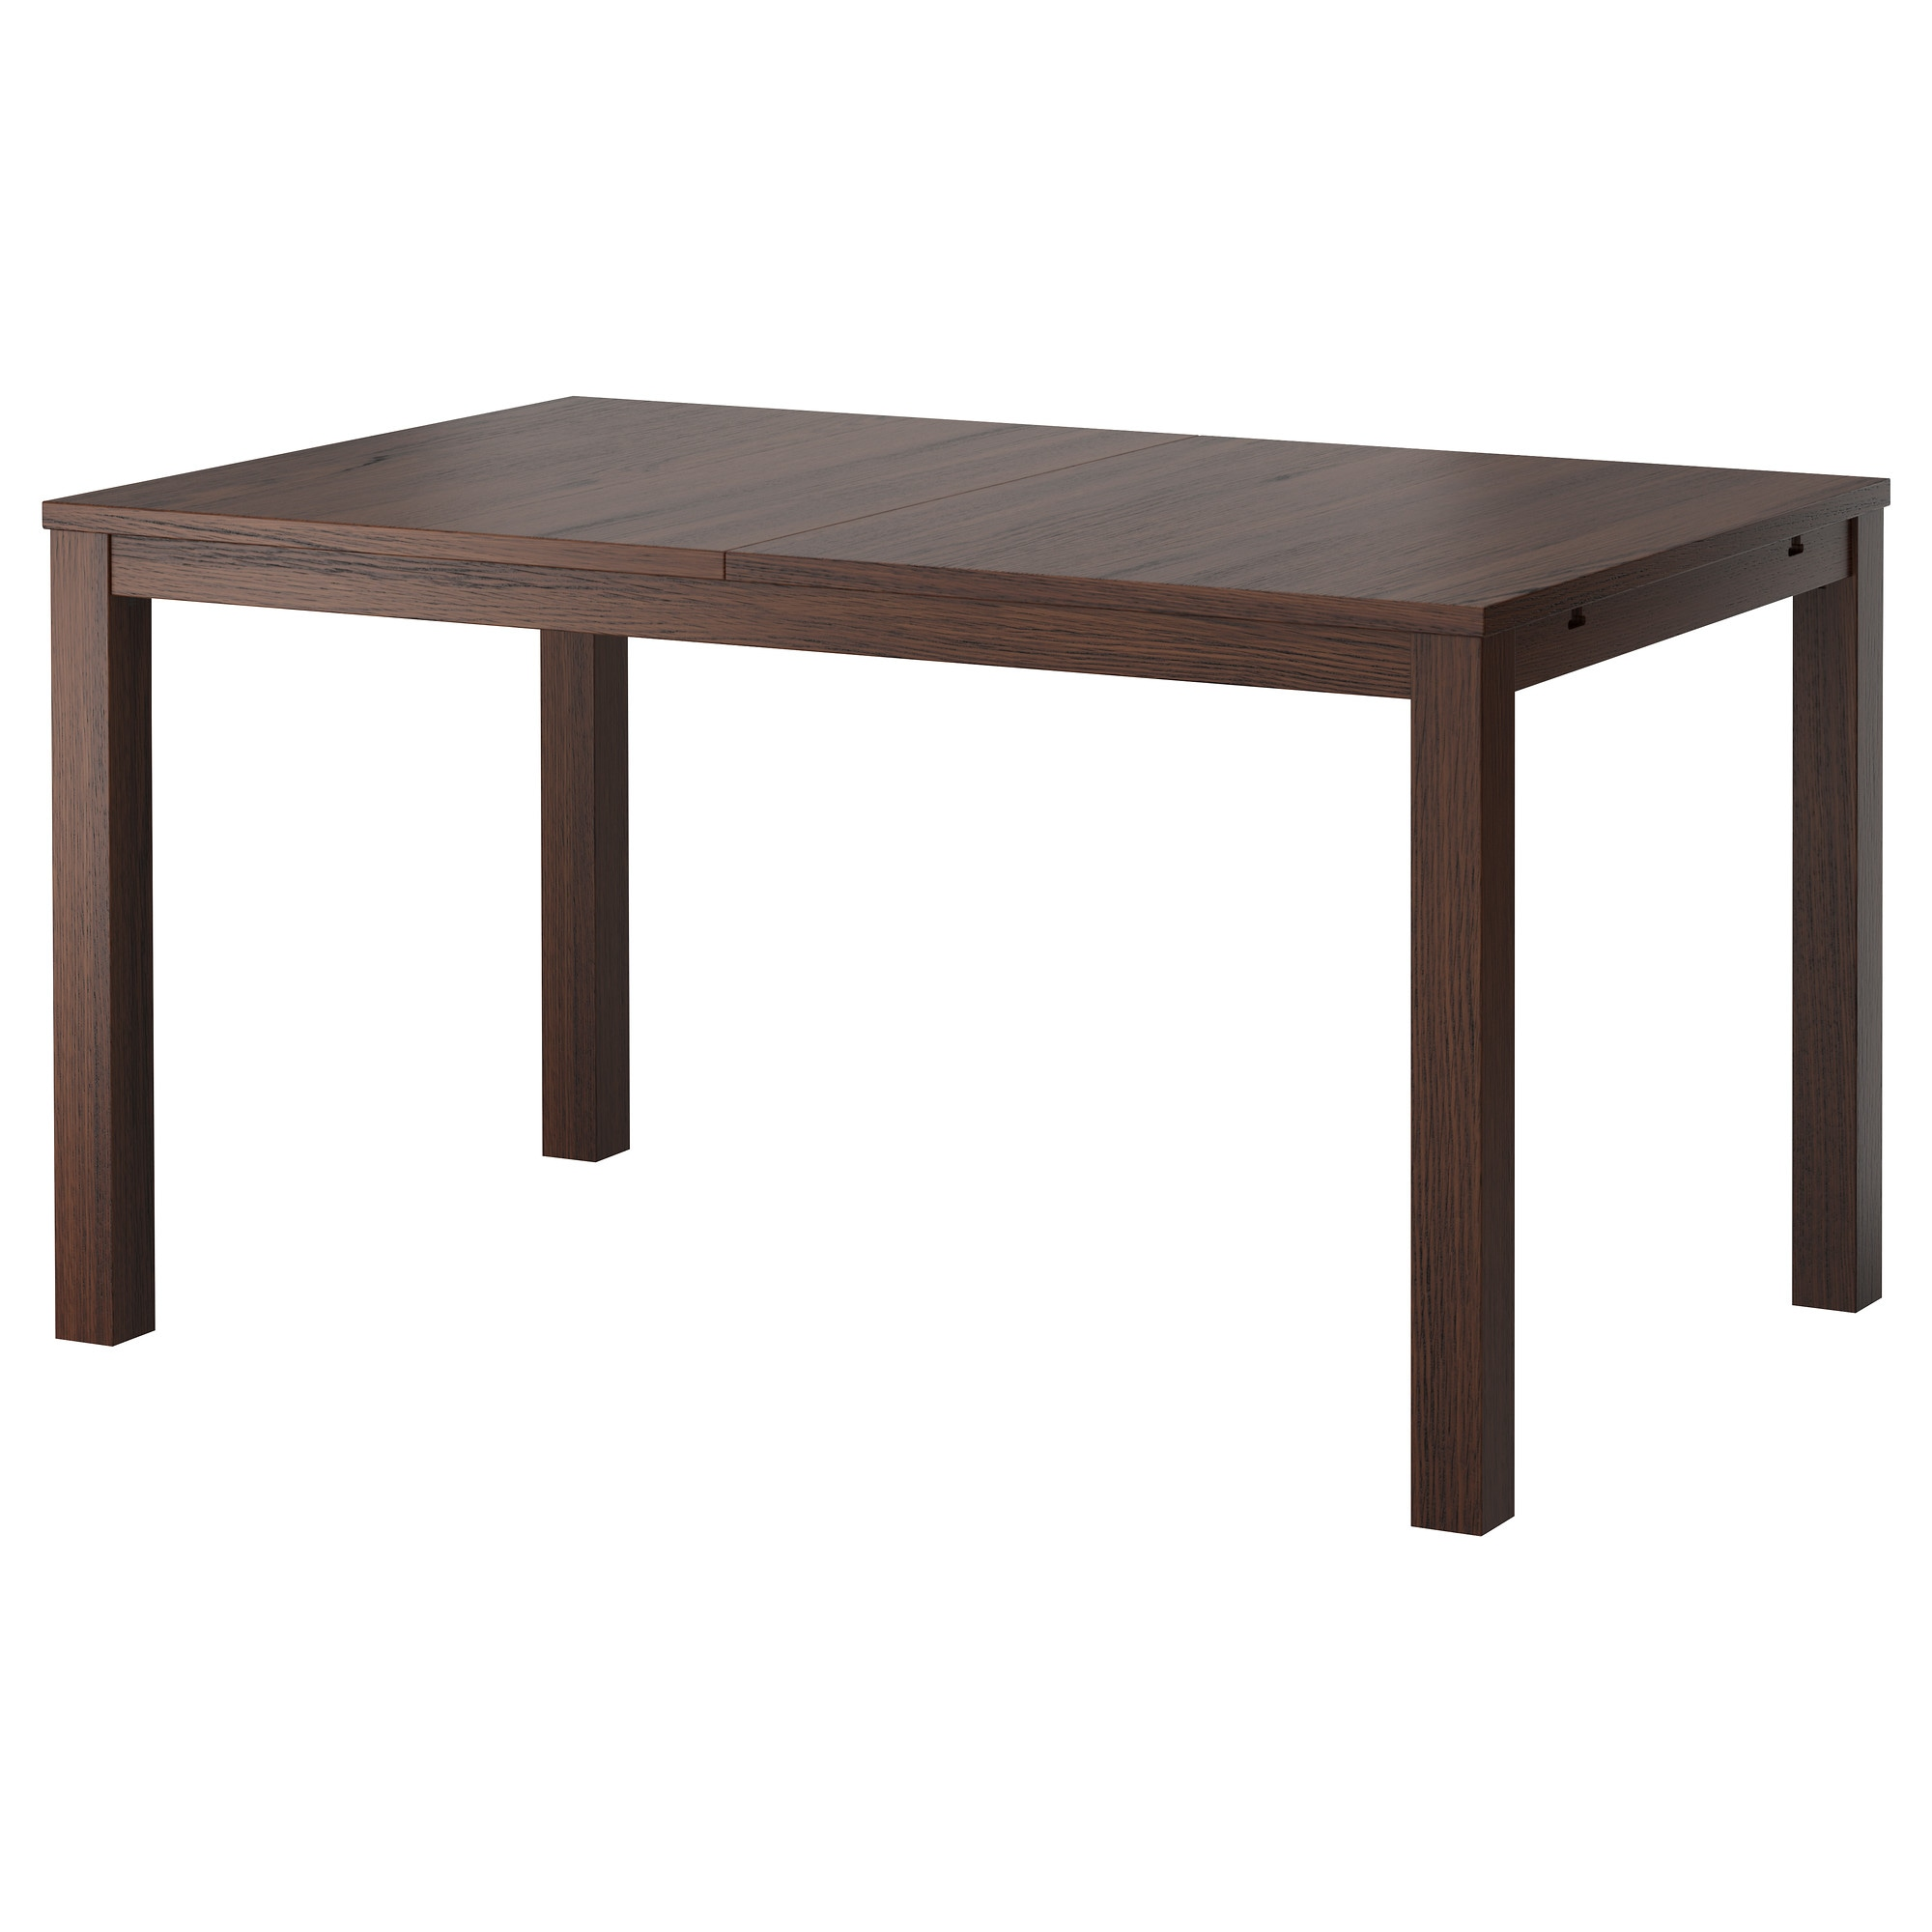 BJURSTA Extendable table - IKEA